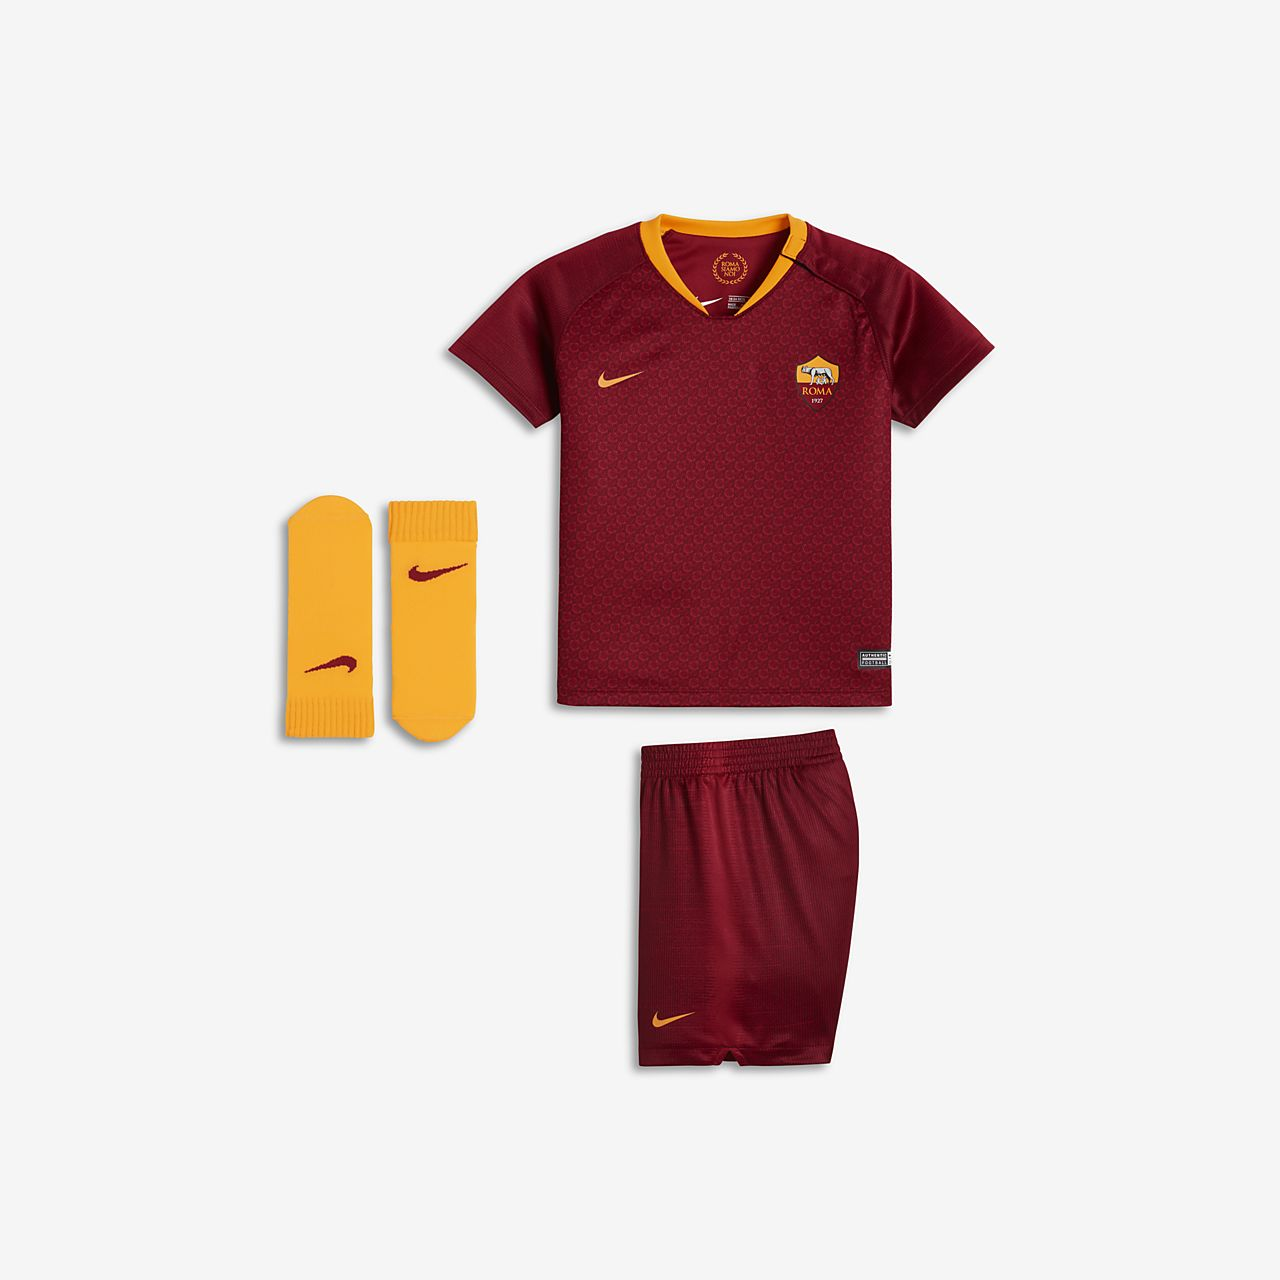 e01b6268427 2018 19 A.S. Roma Stadium Home Baby Football Kit. Nike.com ZA